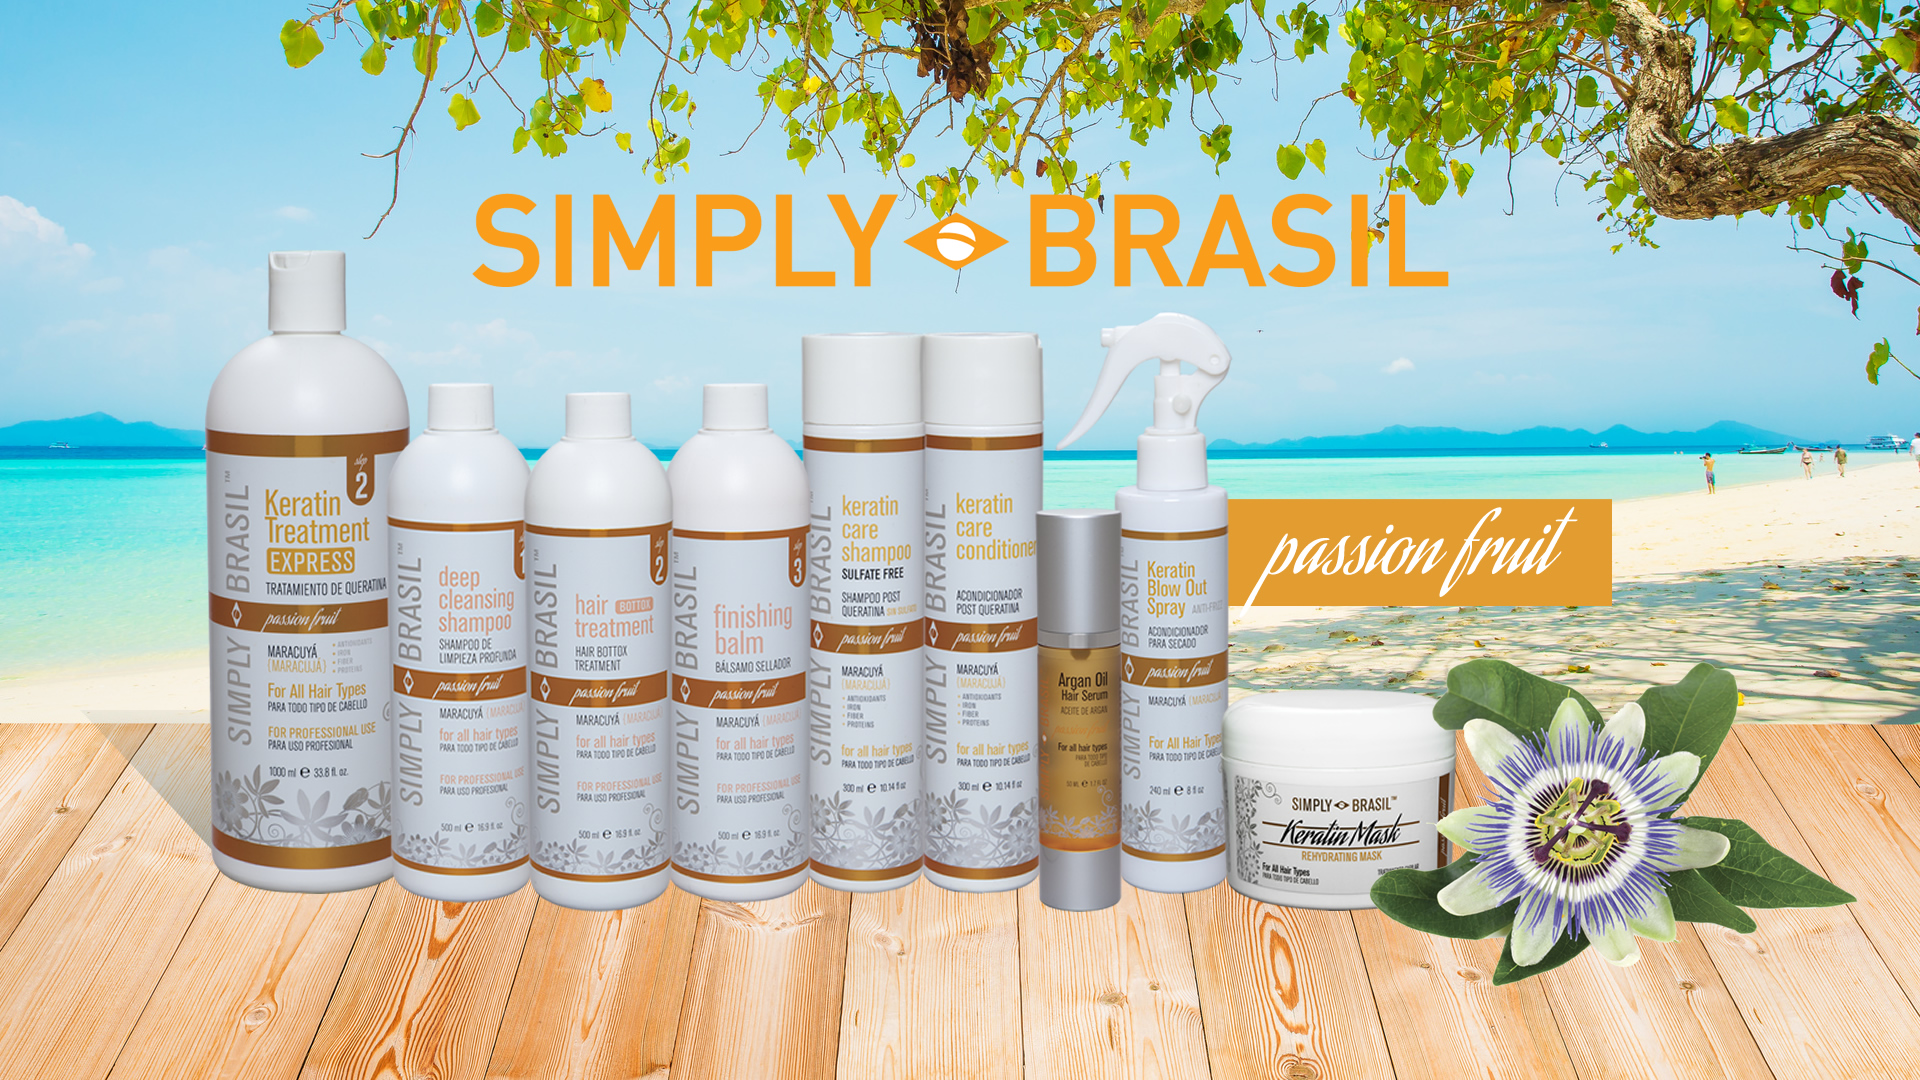 Simply Brasil Brand Hair Care Products